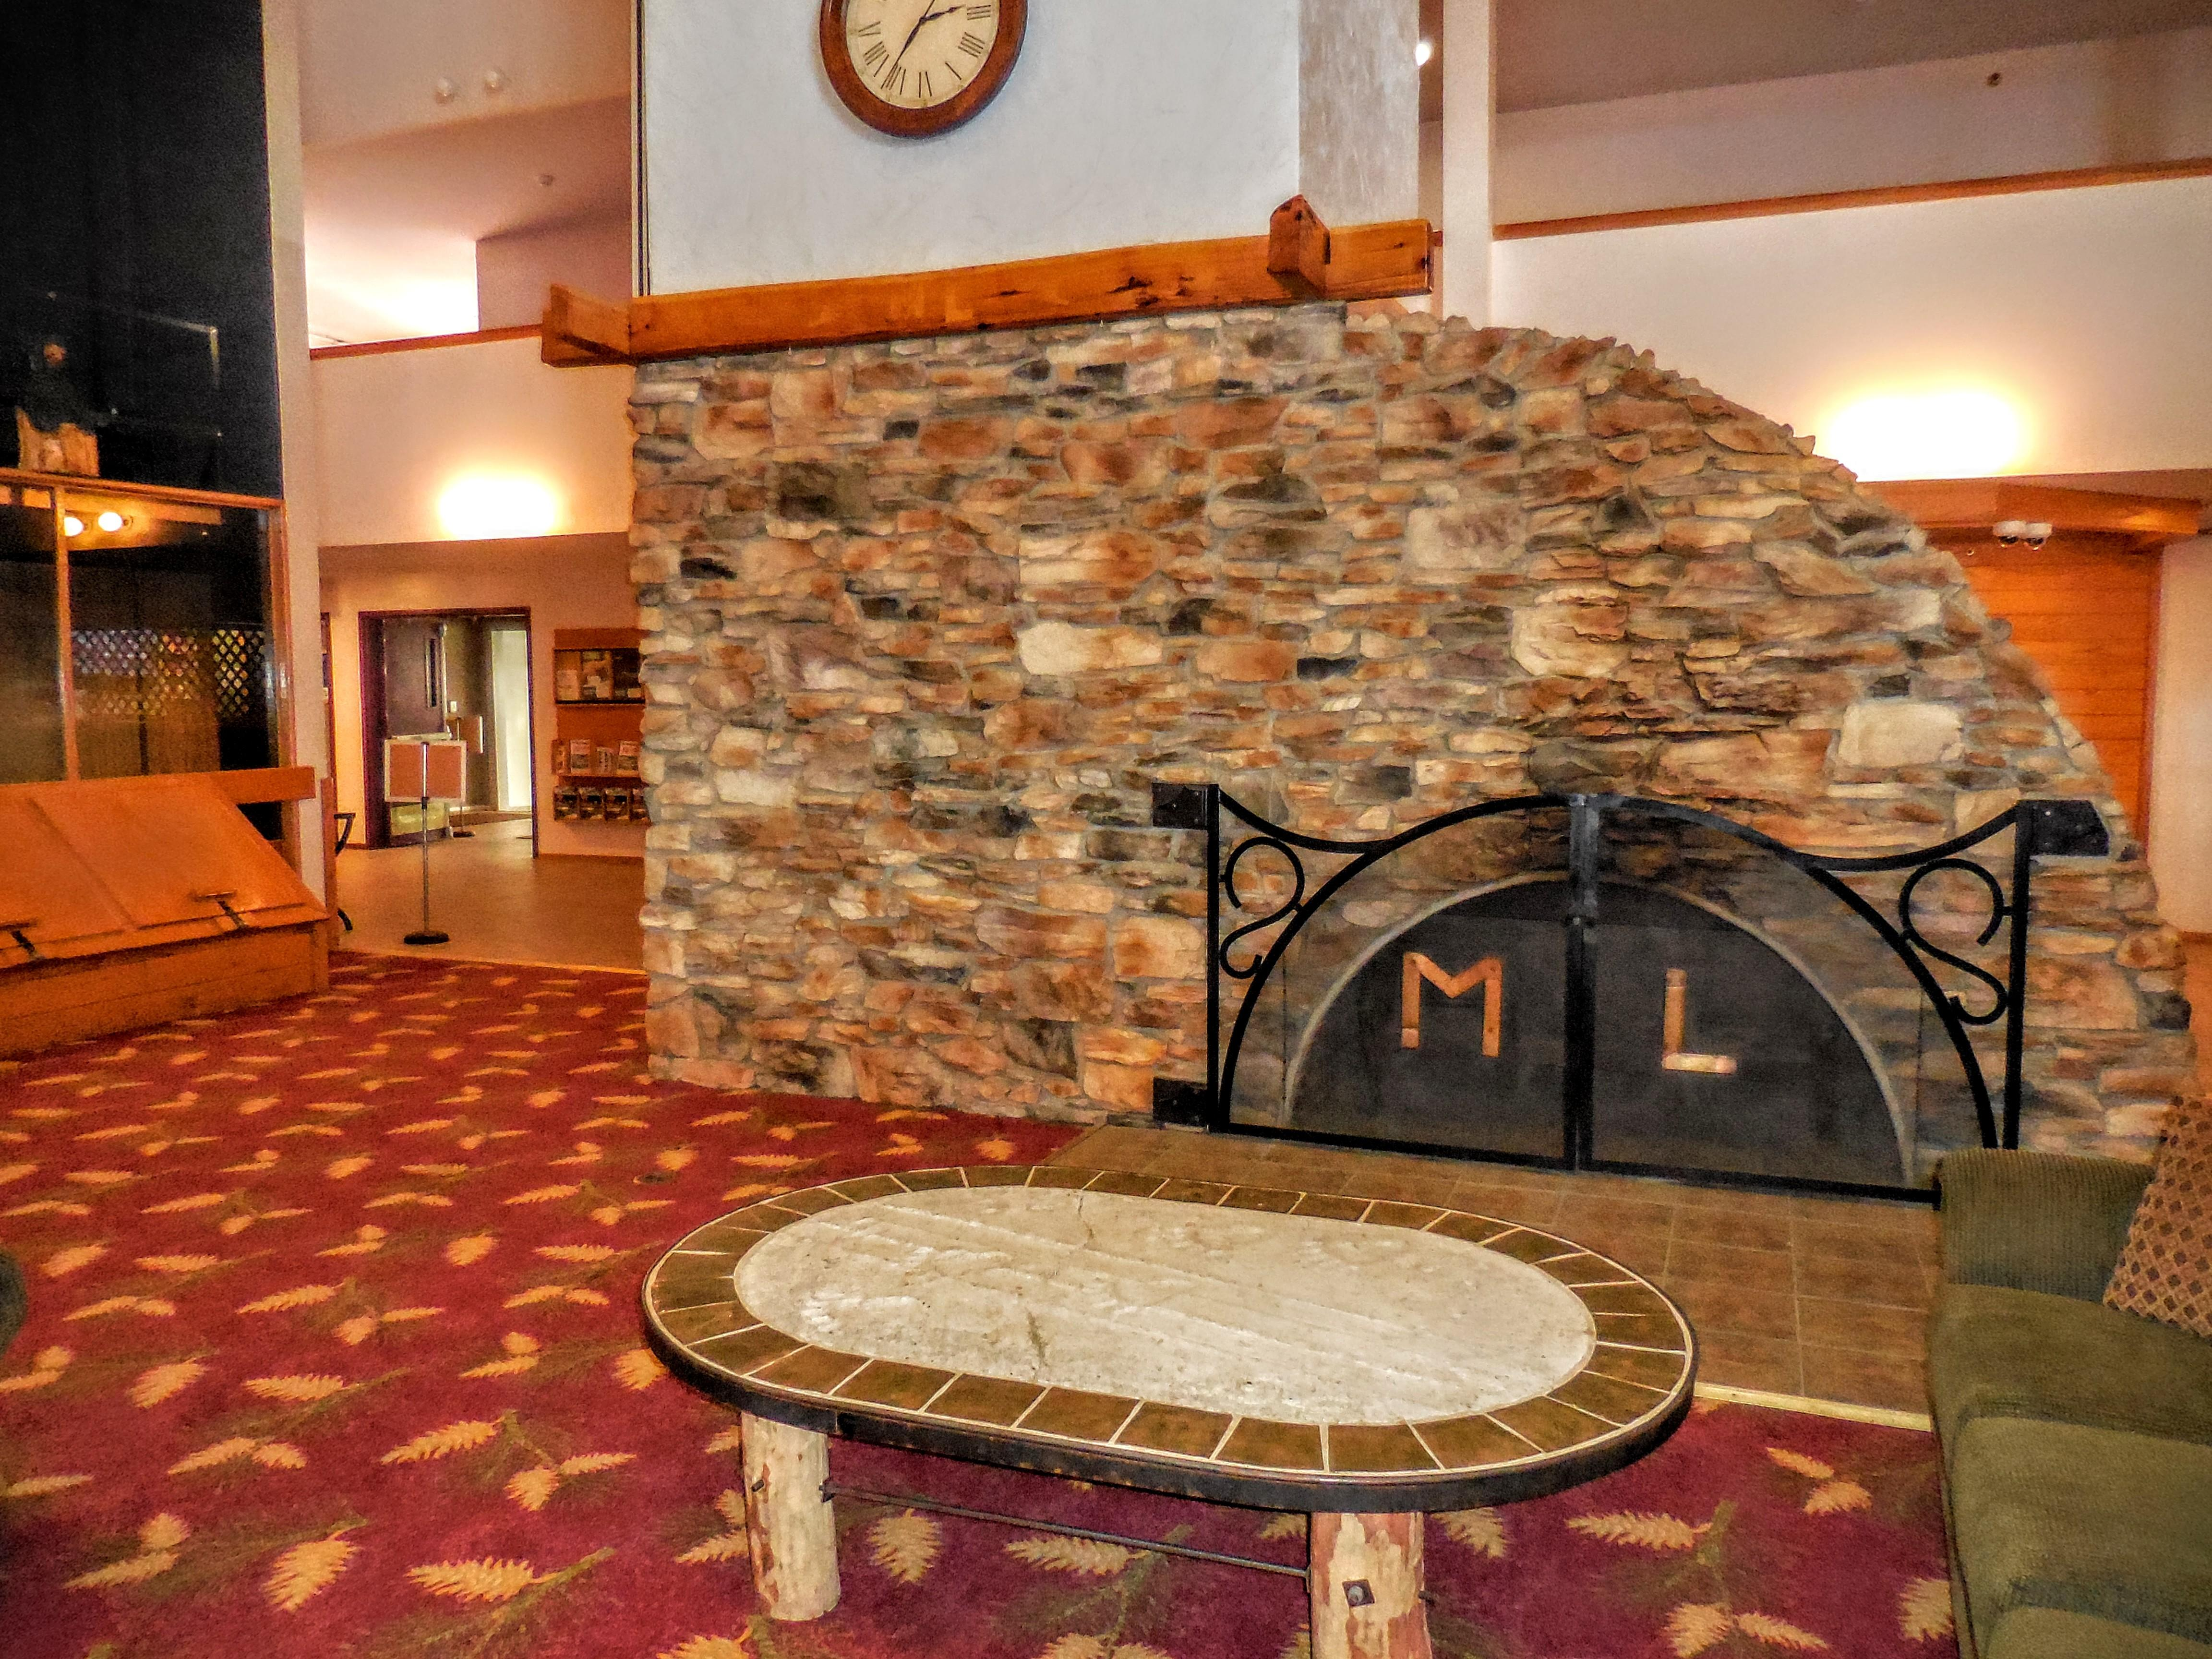 Sit by the fire and enjoy free high-speed Wi-Fi compliments of City Net.